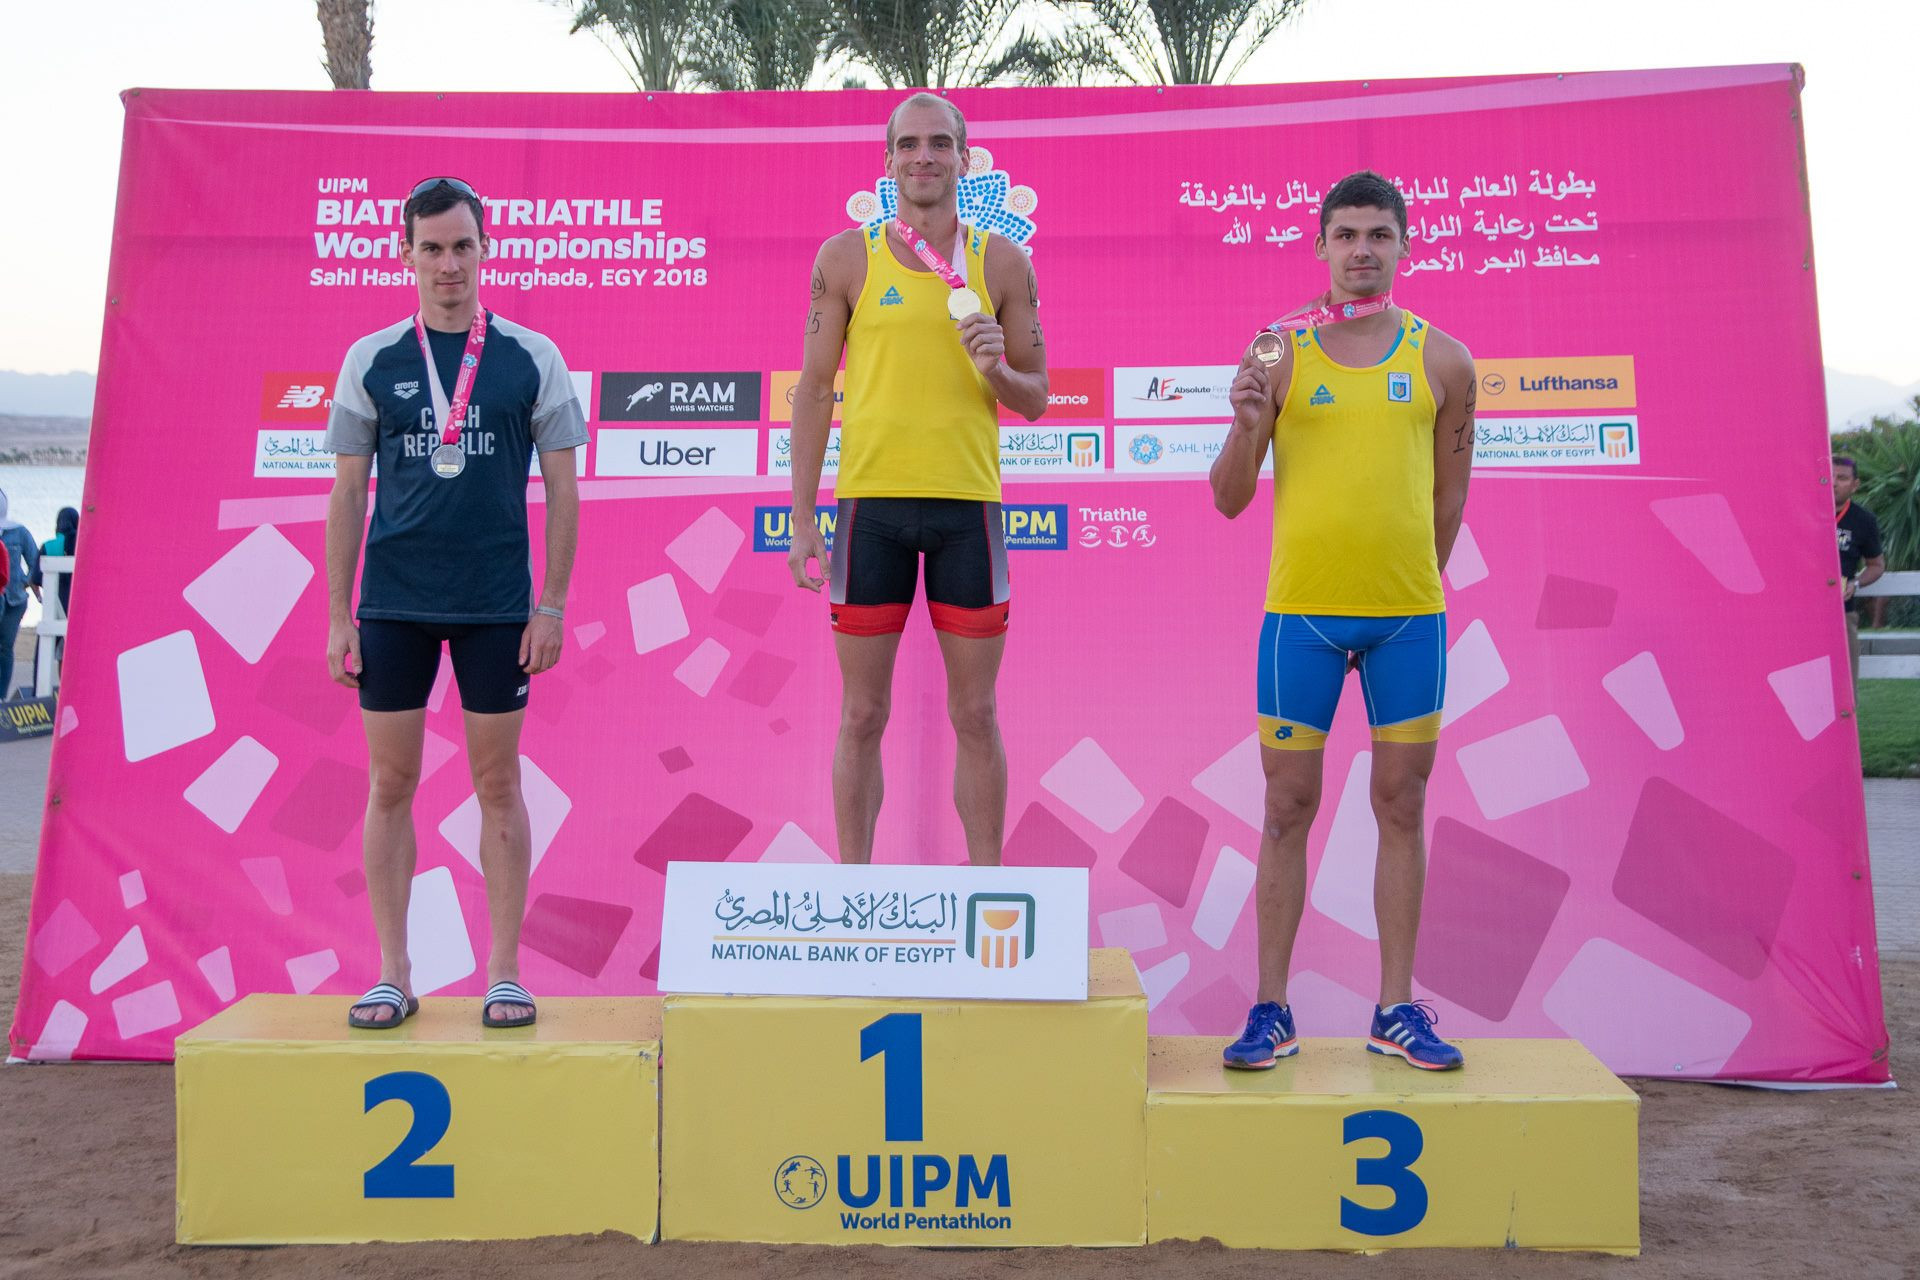 Oleksandr Tovkai of Ukraine won gold in the triathle event at the International Modern Pentathlon Union World Biathle-Triathle Championships in Hurghada, with Ondrej Svechota of the Czech Republic in second and Dmytro Baliuk of Ukraine in third ©UIPM